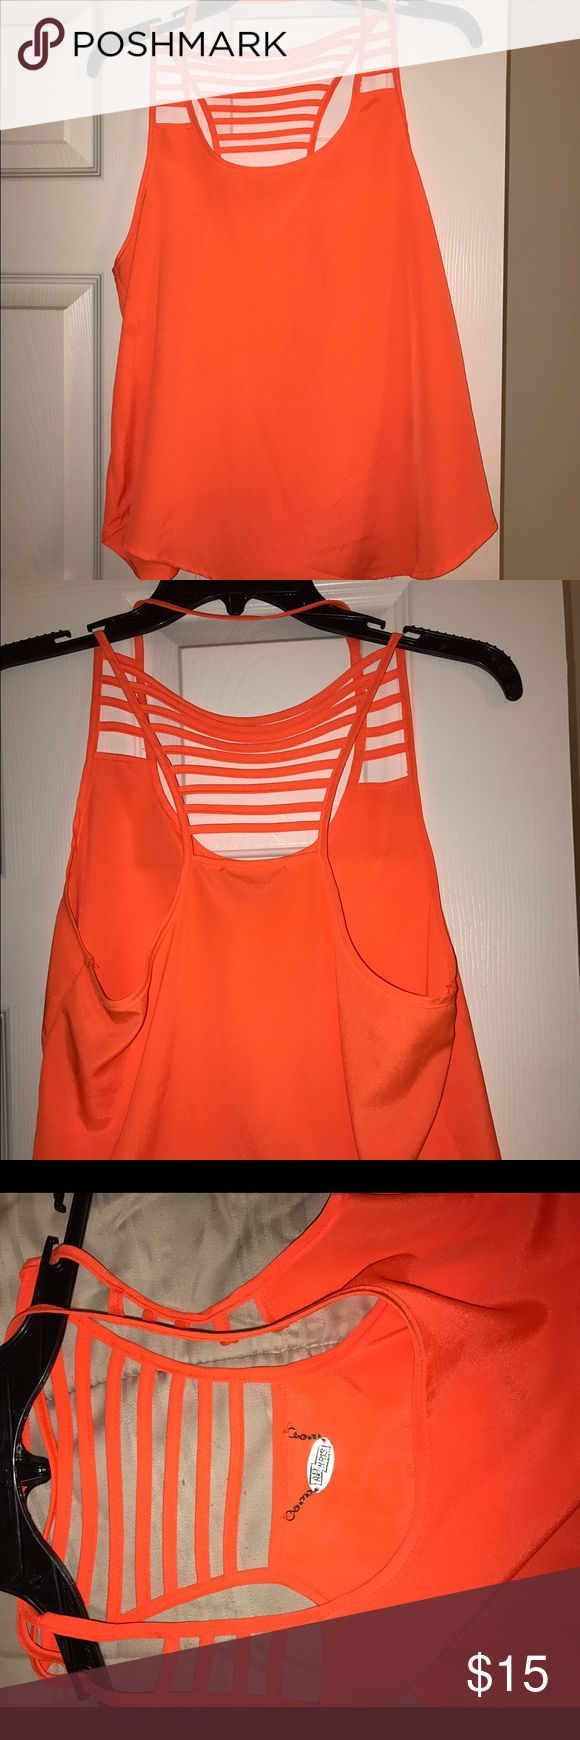 Ali & Kris Neon Orange Strappy Top Tank Top Ali & Kris Neon Orange Strappy Top Tank Top beautiful and can be worn anywhere with anything. 100% Polyester Size Small Urban Outfitters Tops Tank Tops